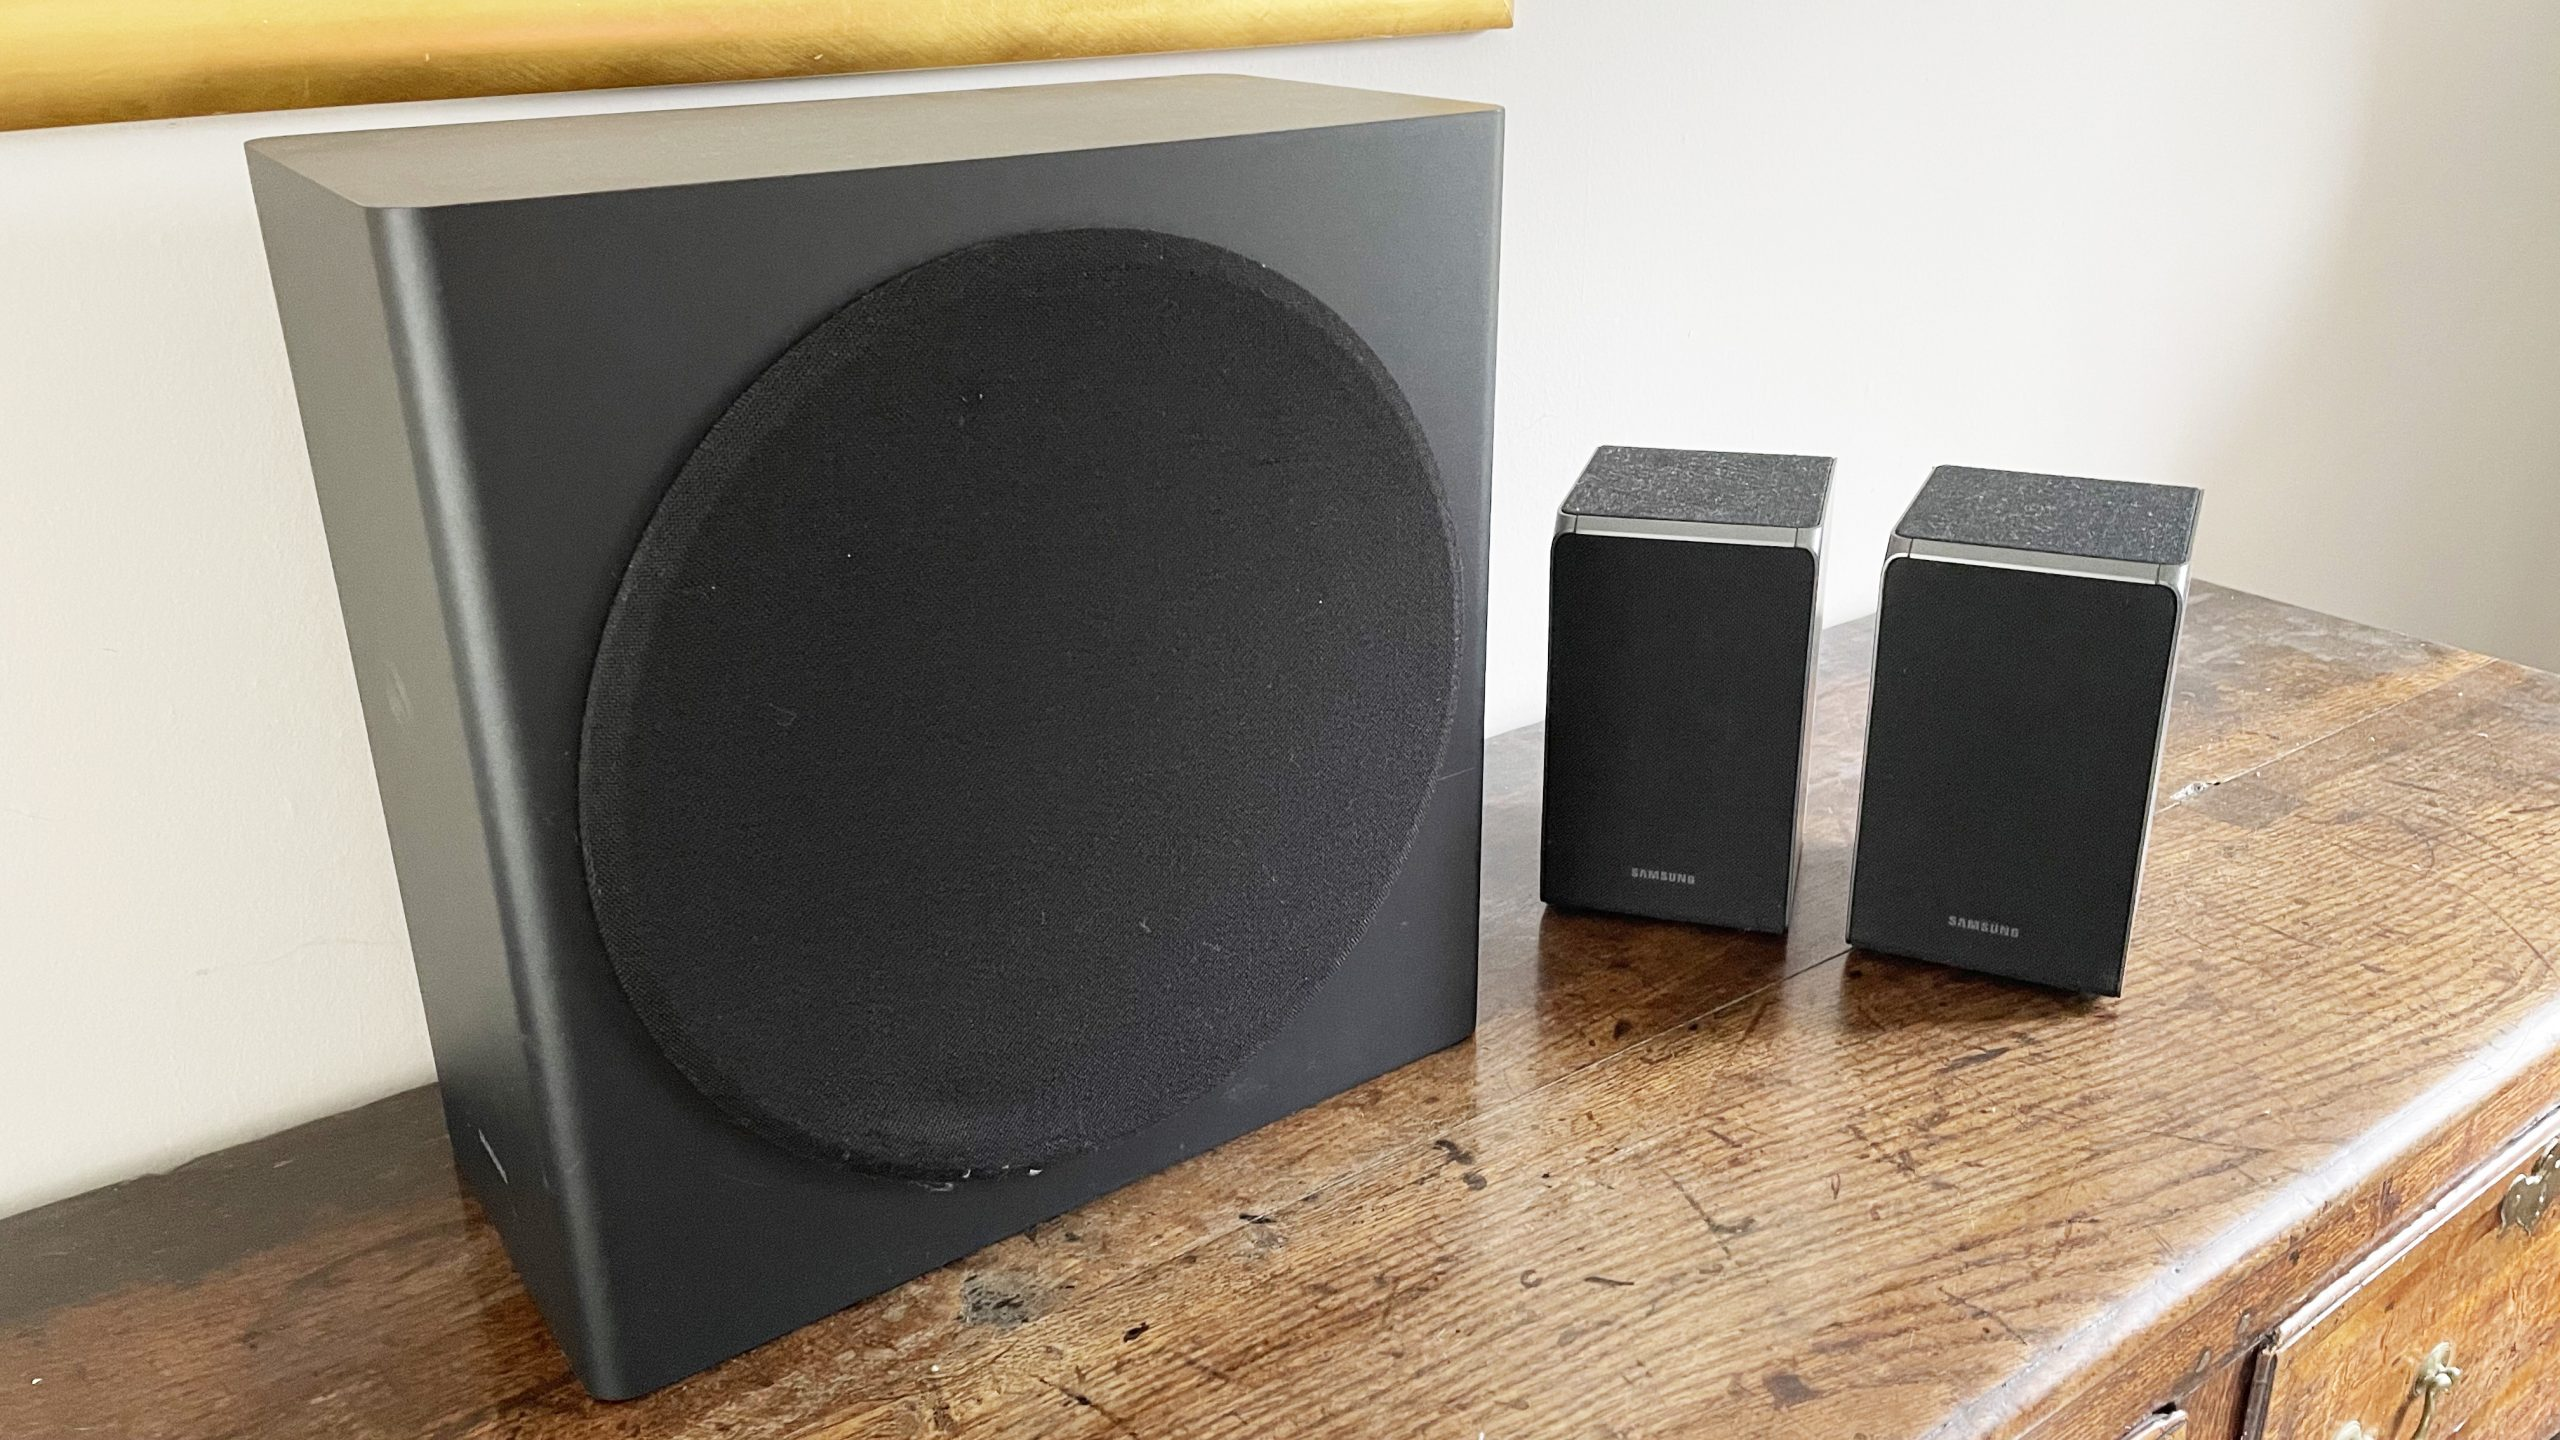 Samsung HW-Q950A subwoofer with speakers